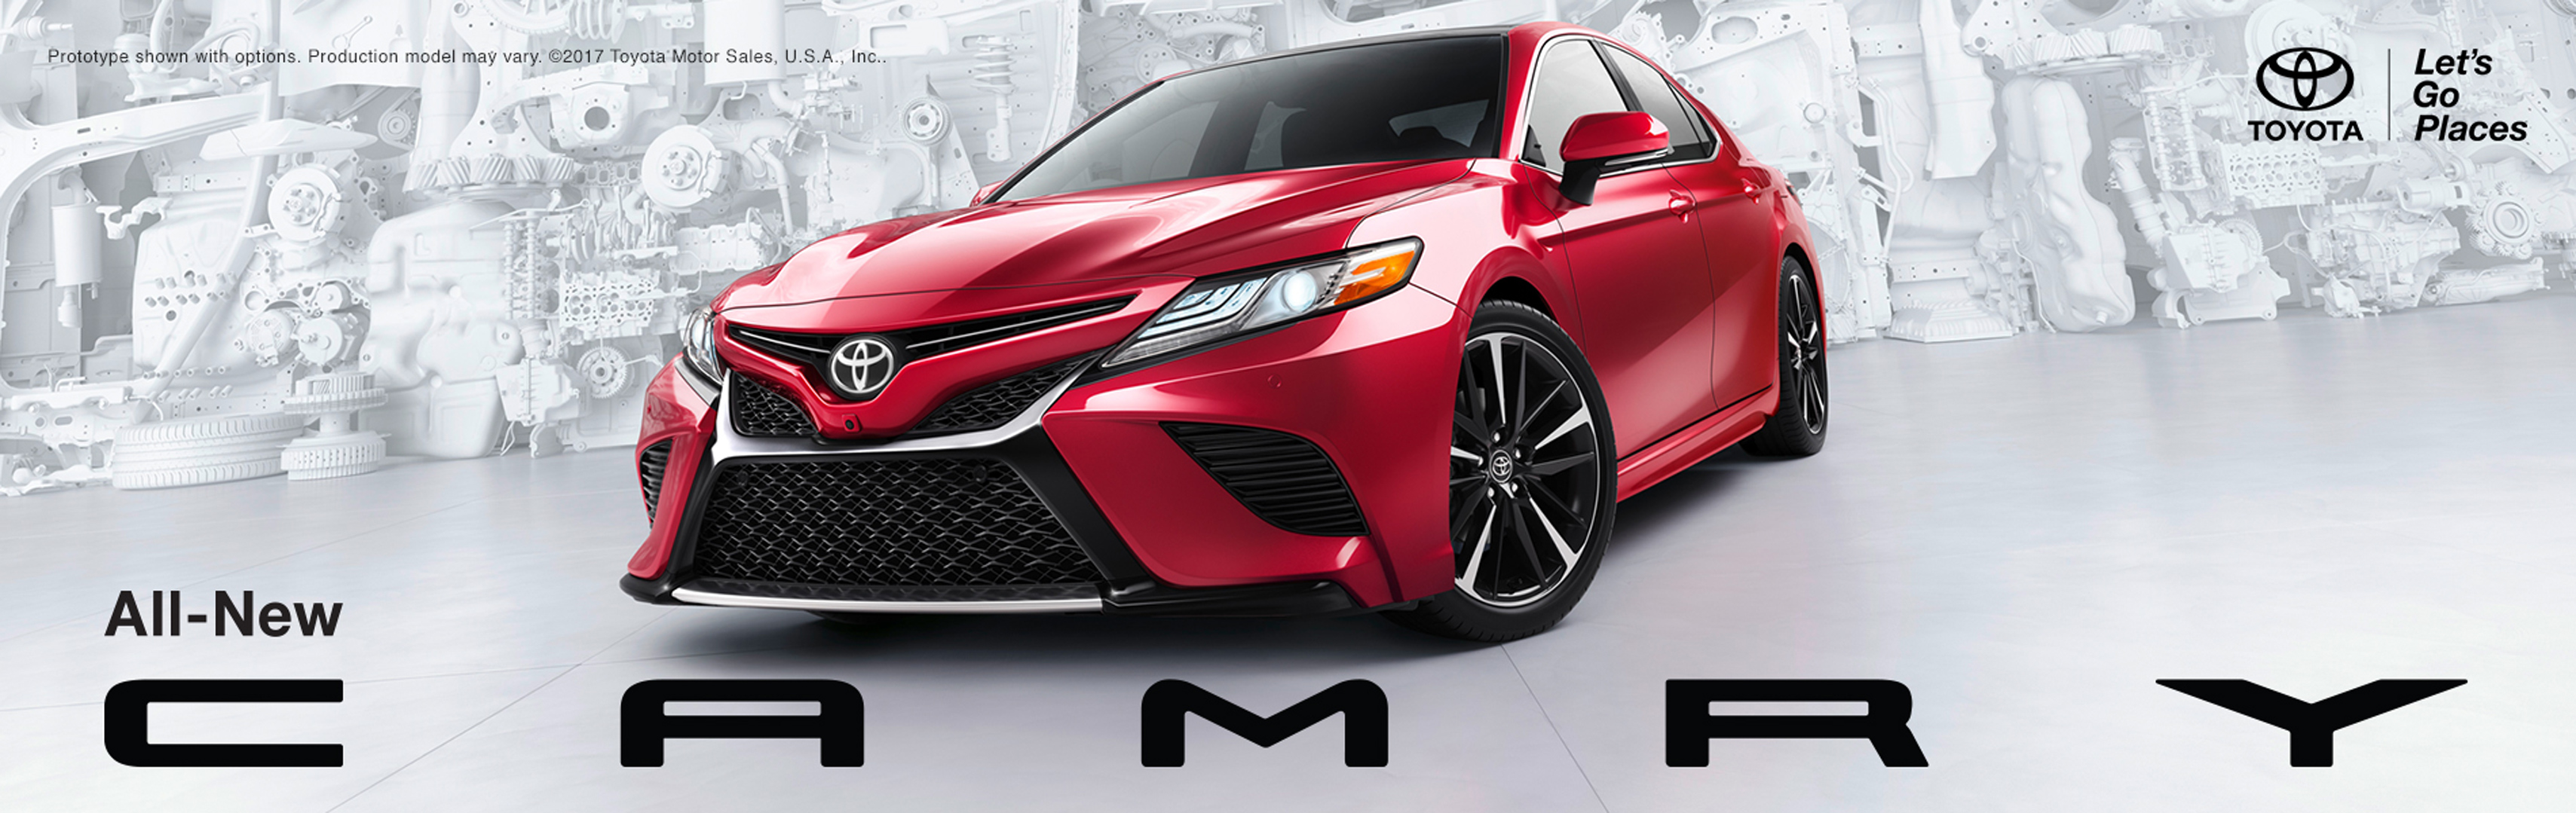 All-New Toyota Camry Ignites the Senses